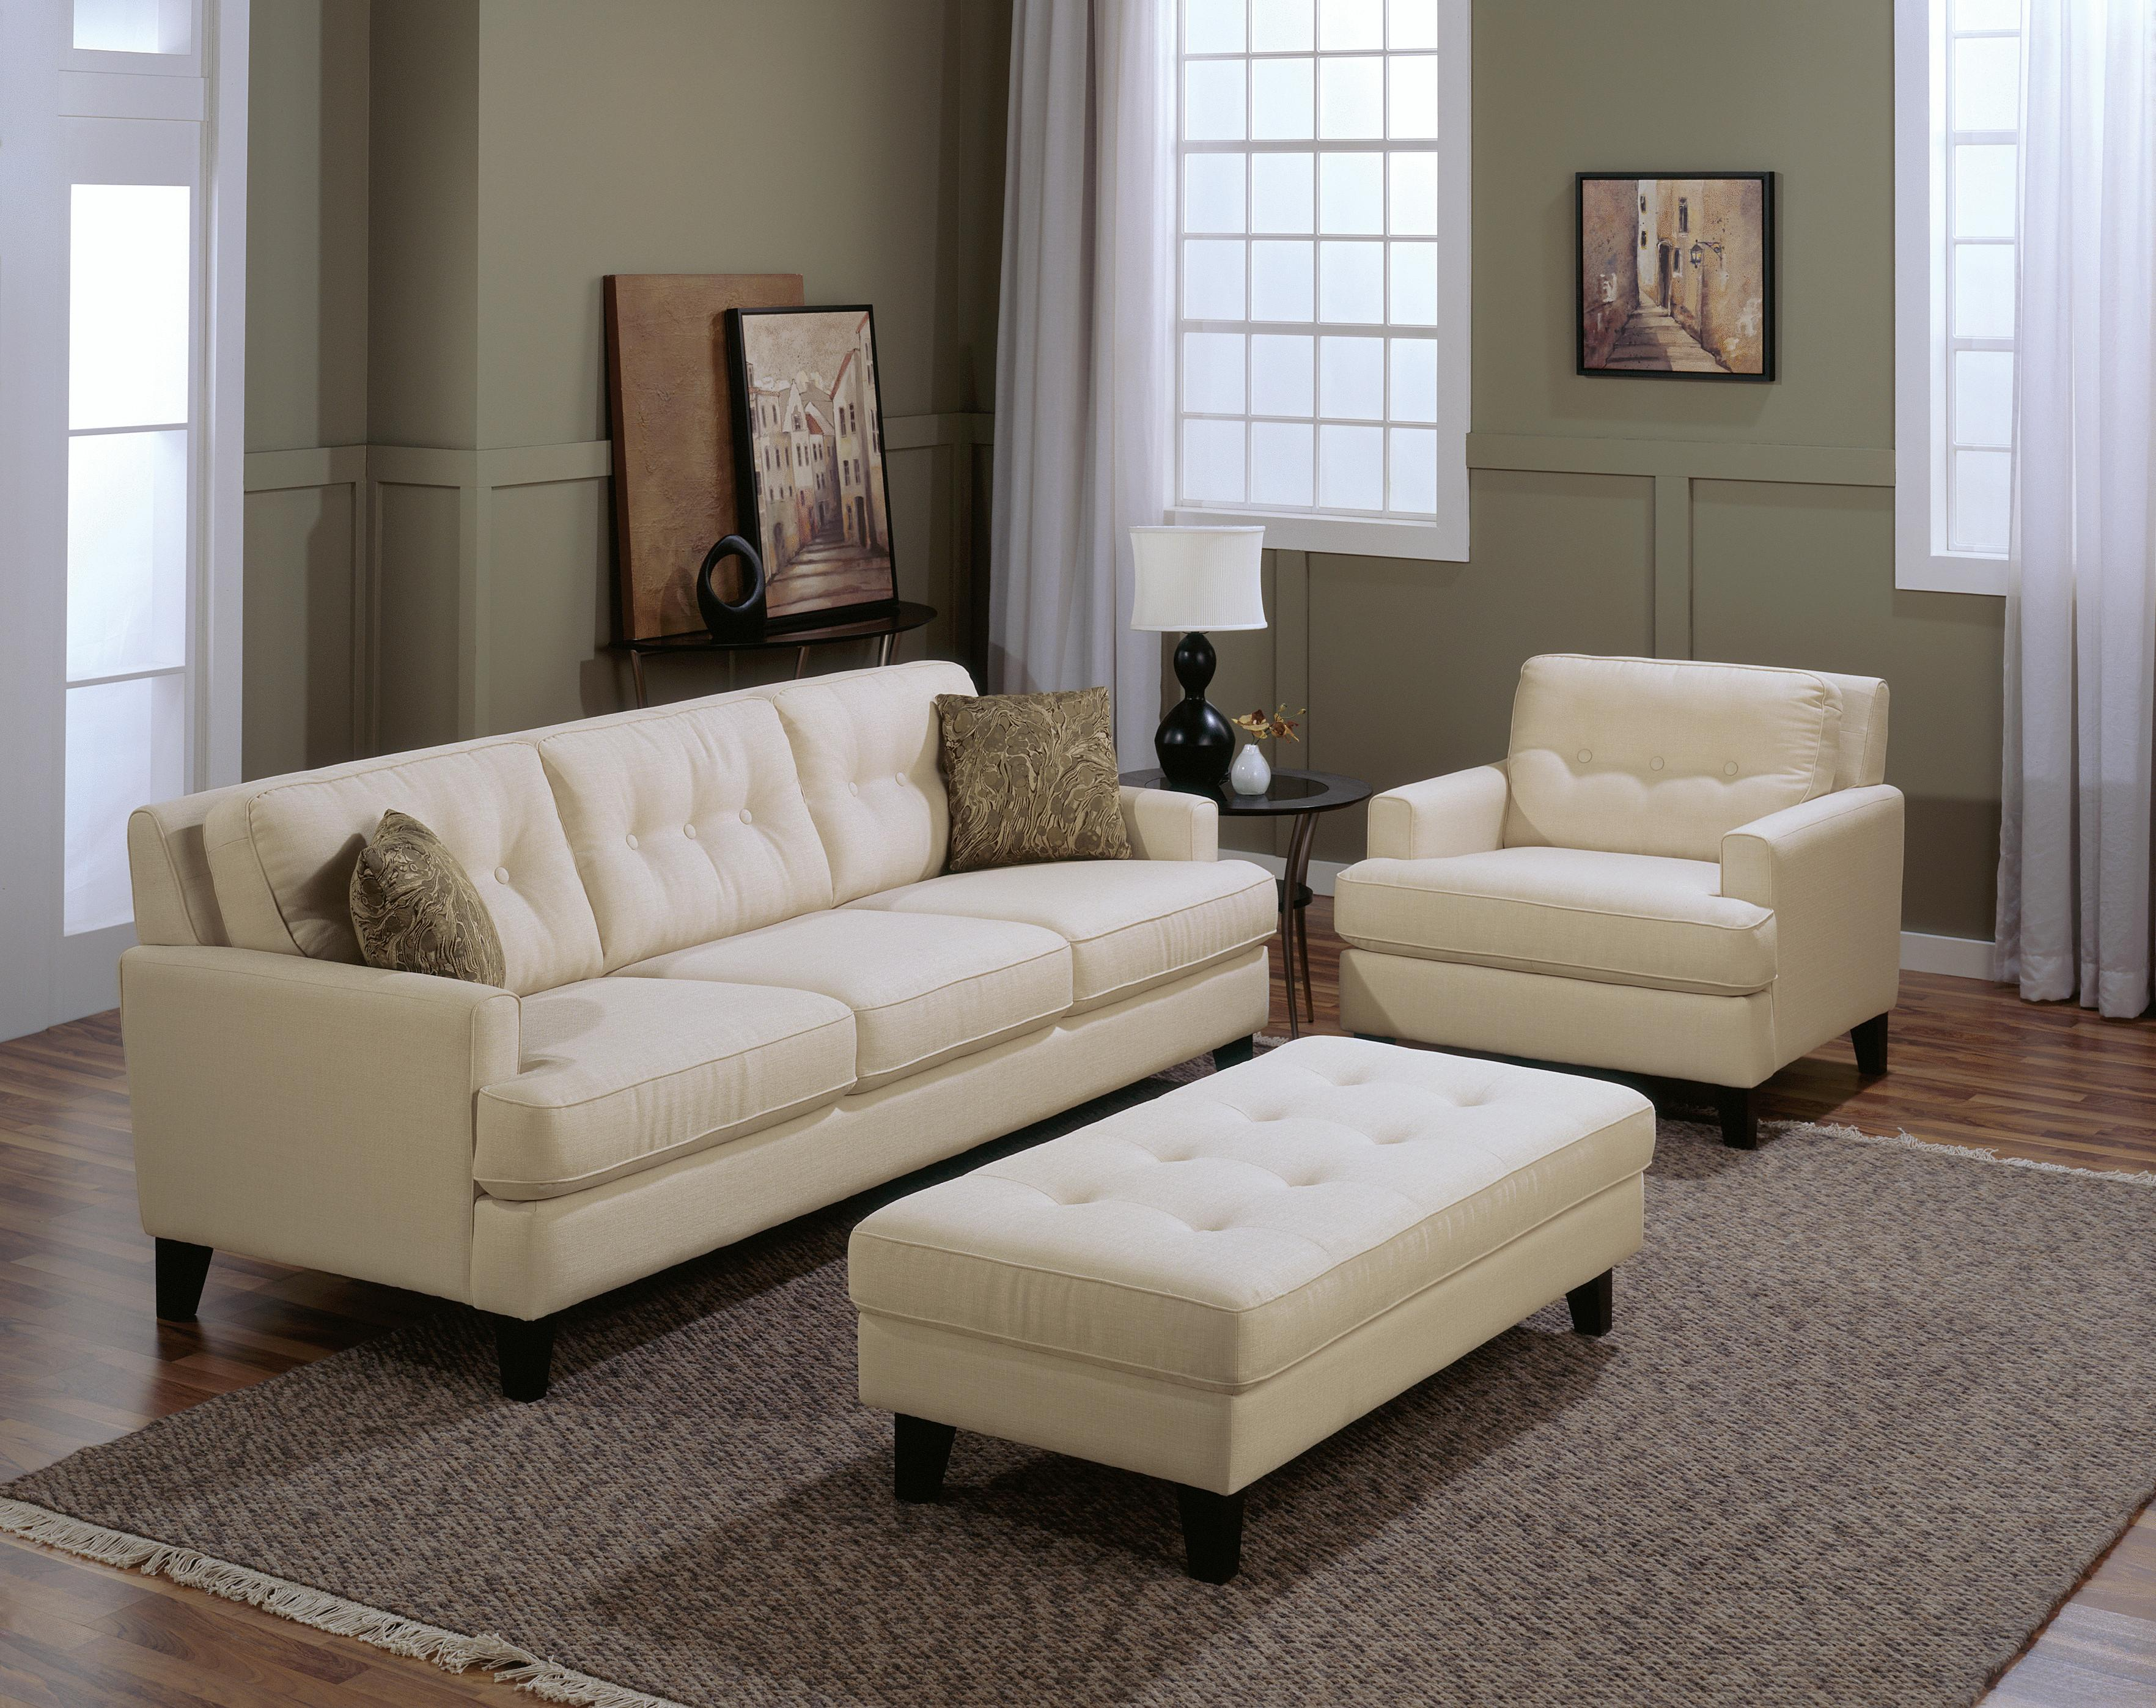 Palliser Barbara Transitional Sectional Sofa With Rhf Chaise Jordan S Home Furnishings New Minas And Canning Nova Scotia